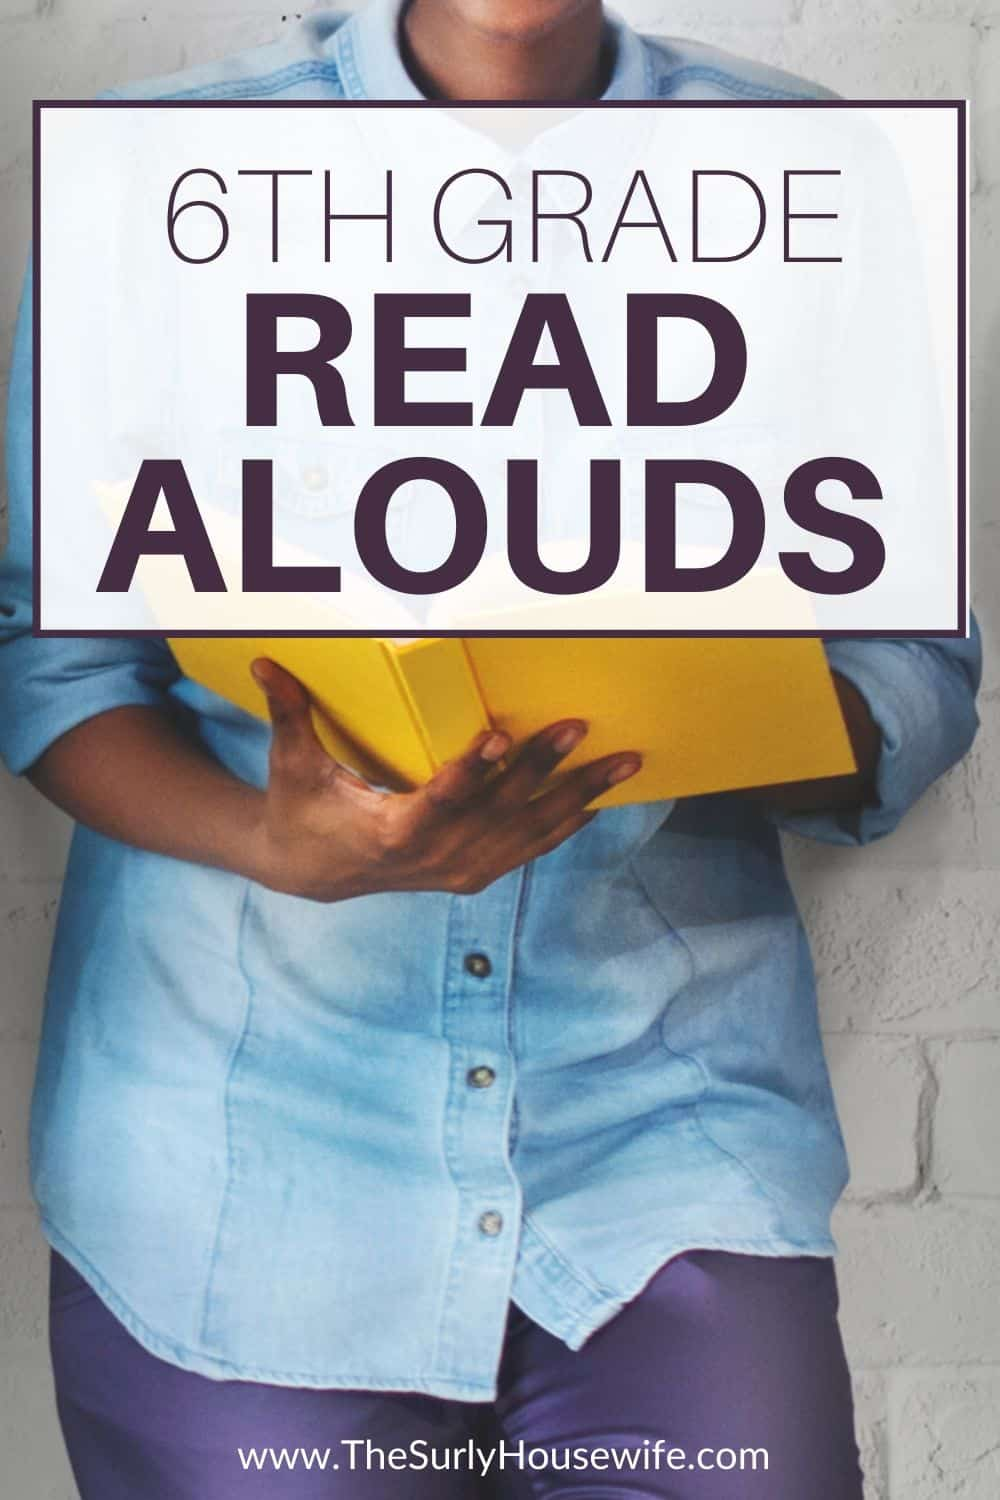 Looking for read alouds for older kids or students? Searching for 6th grade read alouds? Click here for 10 of the best read aloud books for 6th graders!